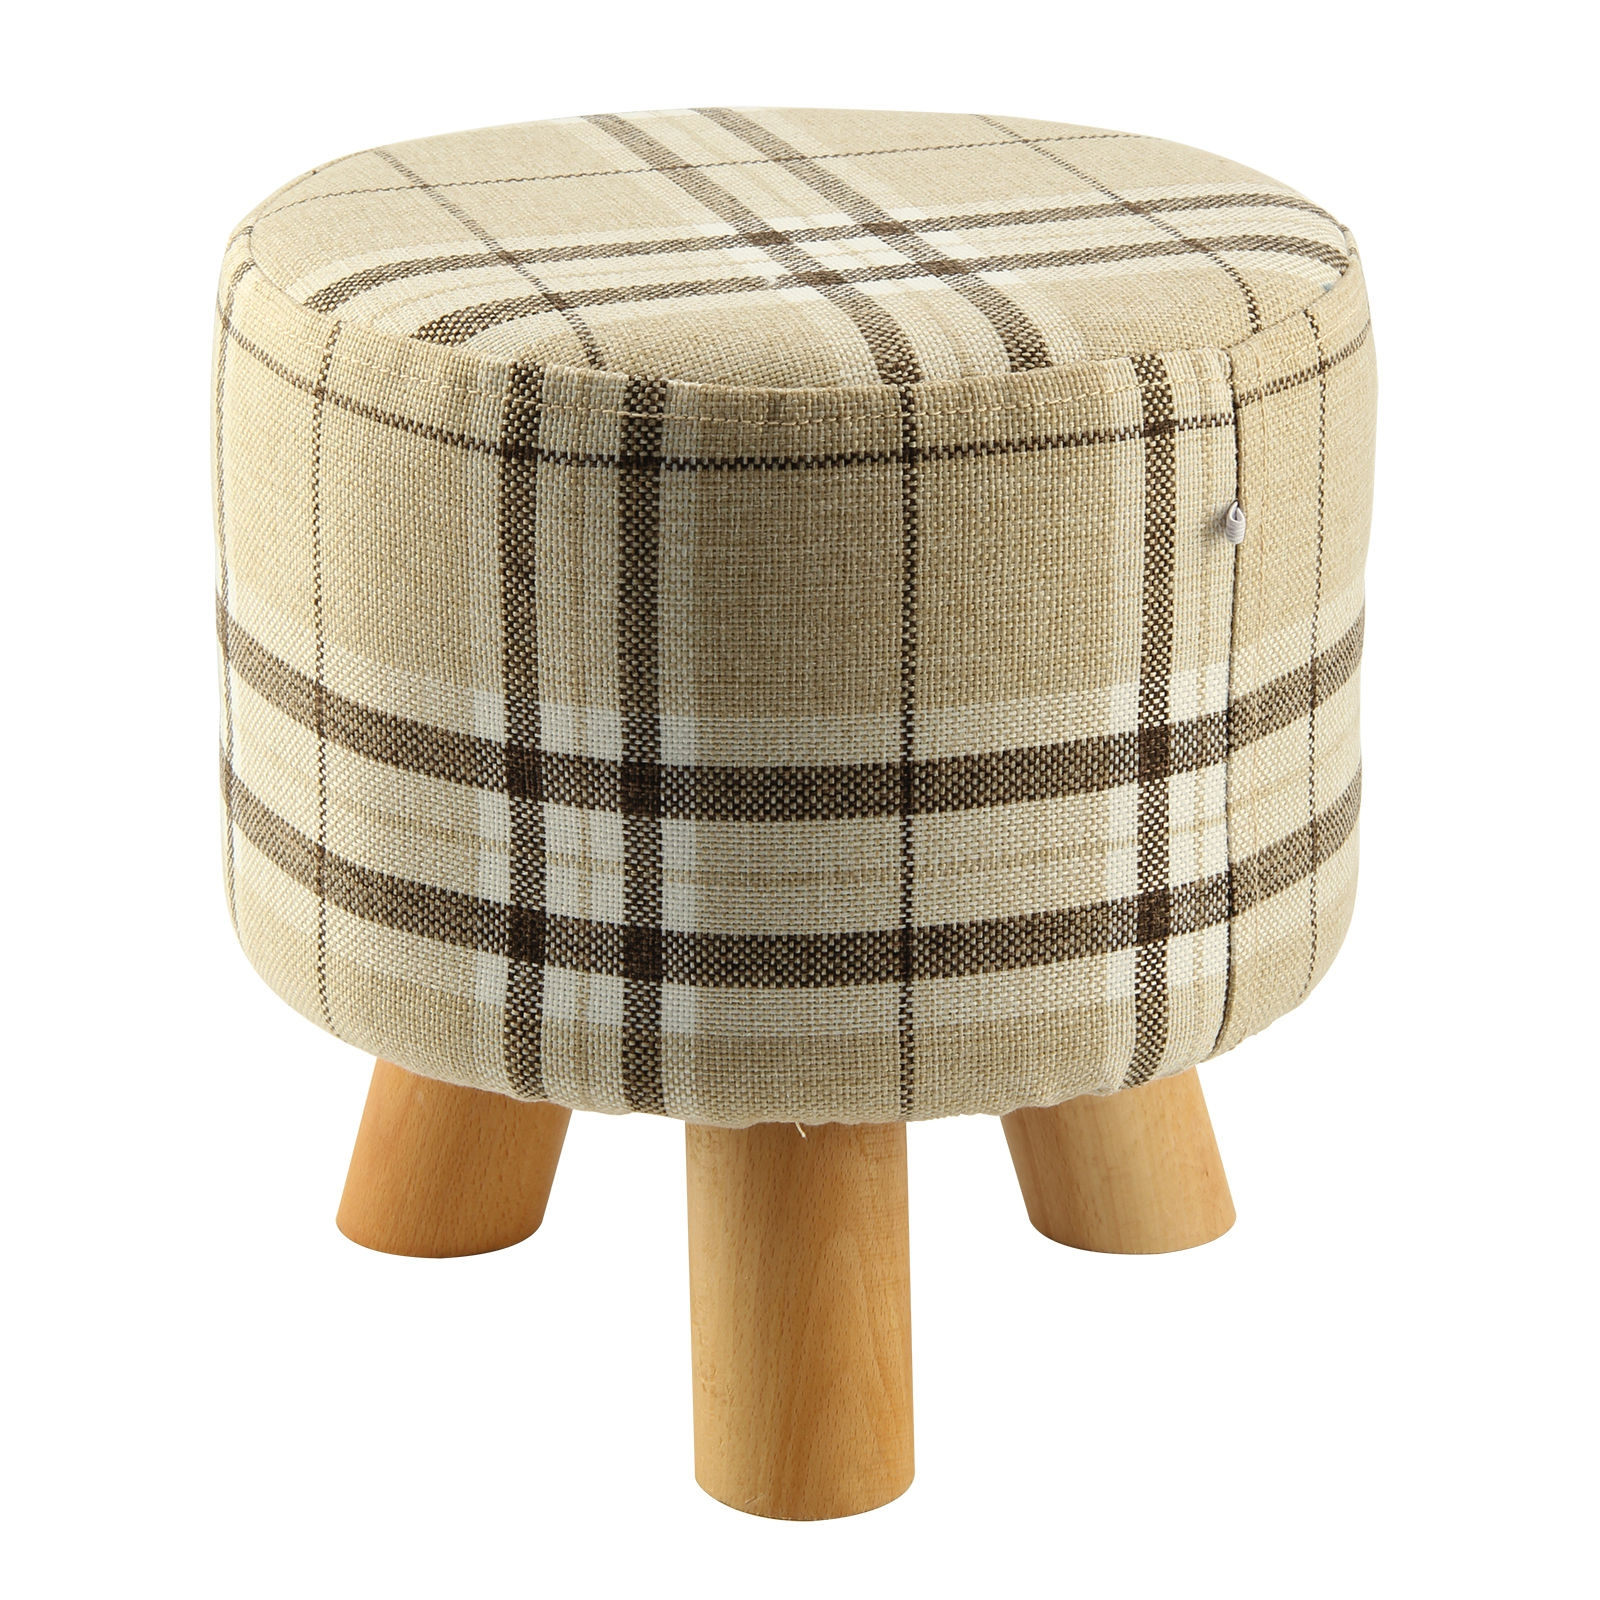 Online Get Cheap Round Footstool Aliexpress Alibaba Group With Regard To Cheap Footstools And Pouffes (View 8 of 15)